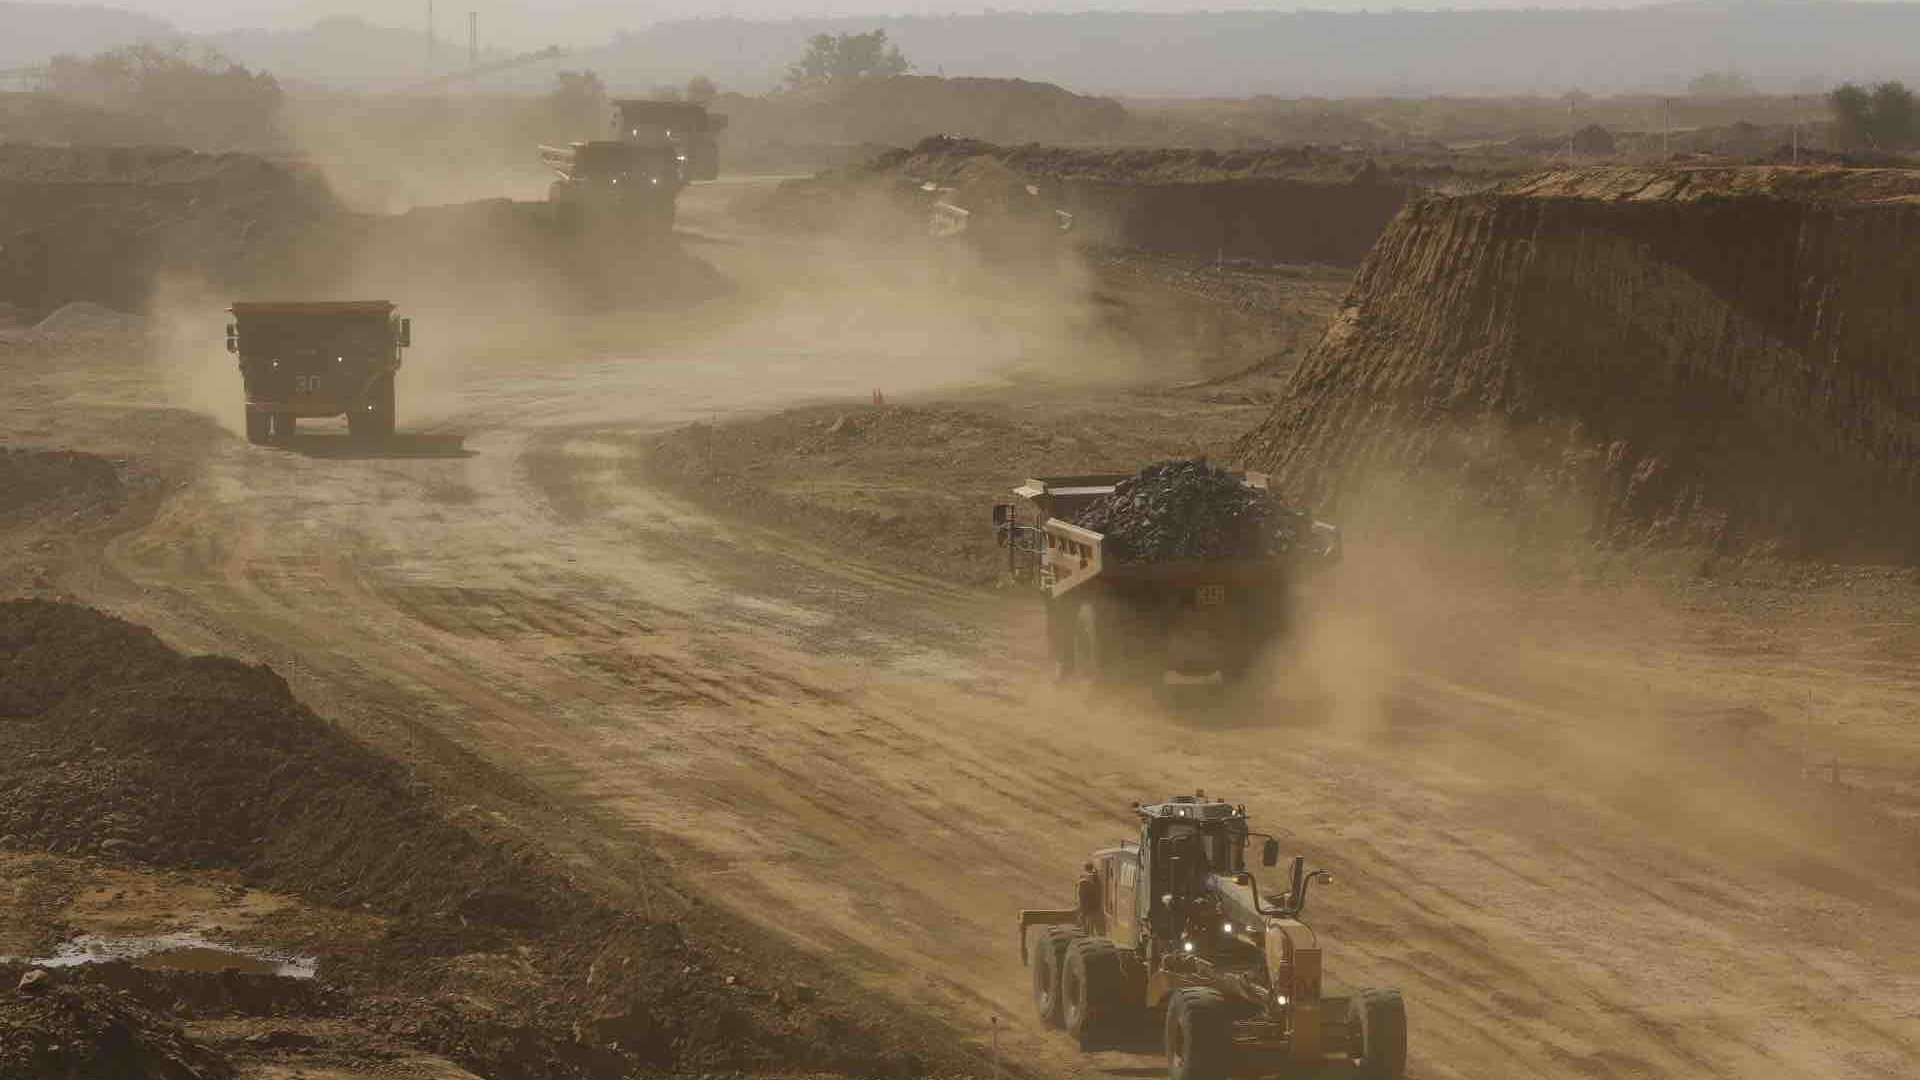 global-road-technology-dust-control-methods-engineers-perspective